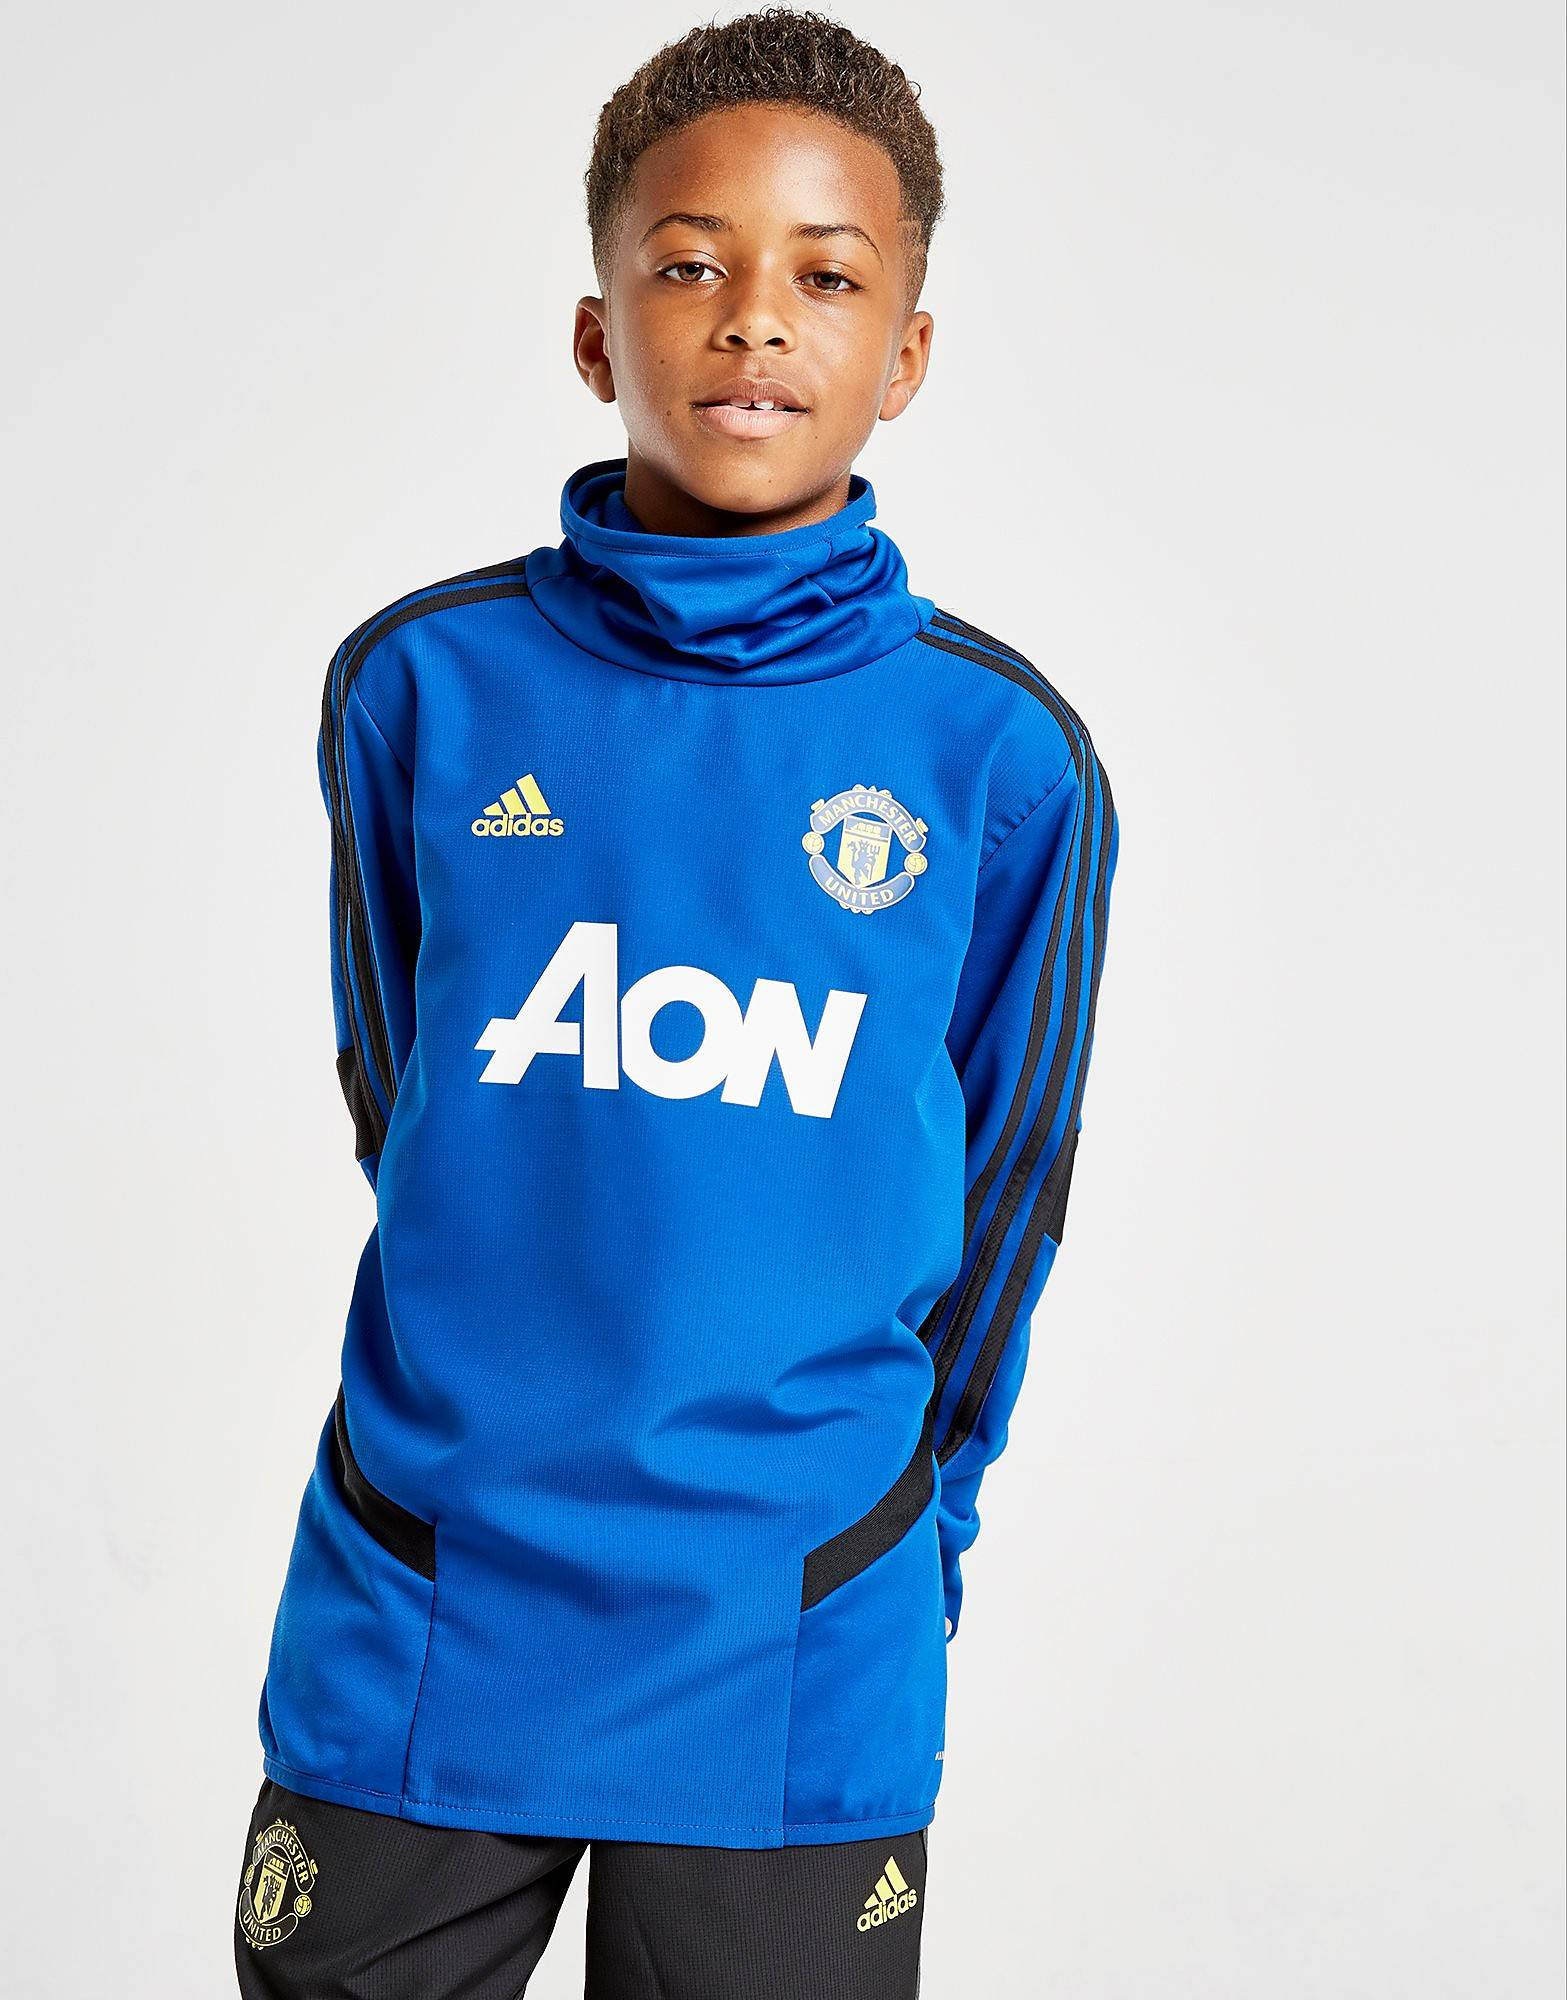 Image of Adidas Manchester United FC Lämpöpaita Juniorit - Kids, Sininen